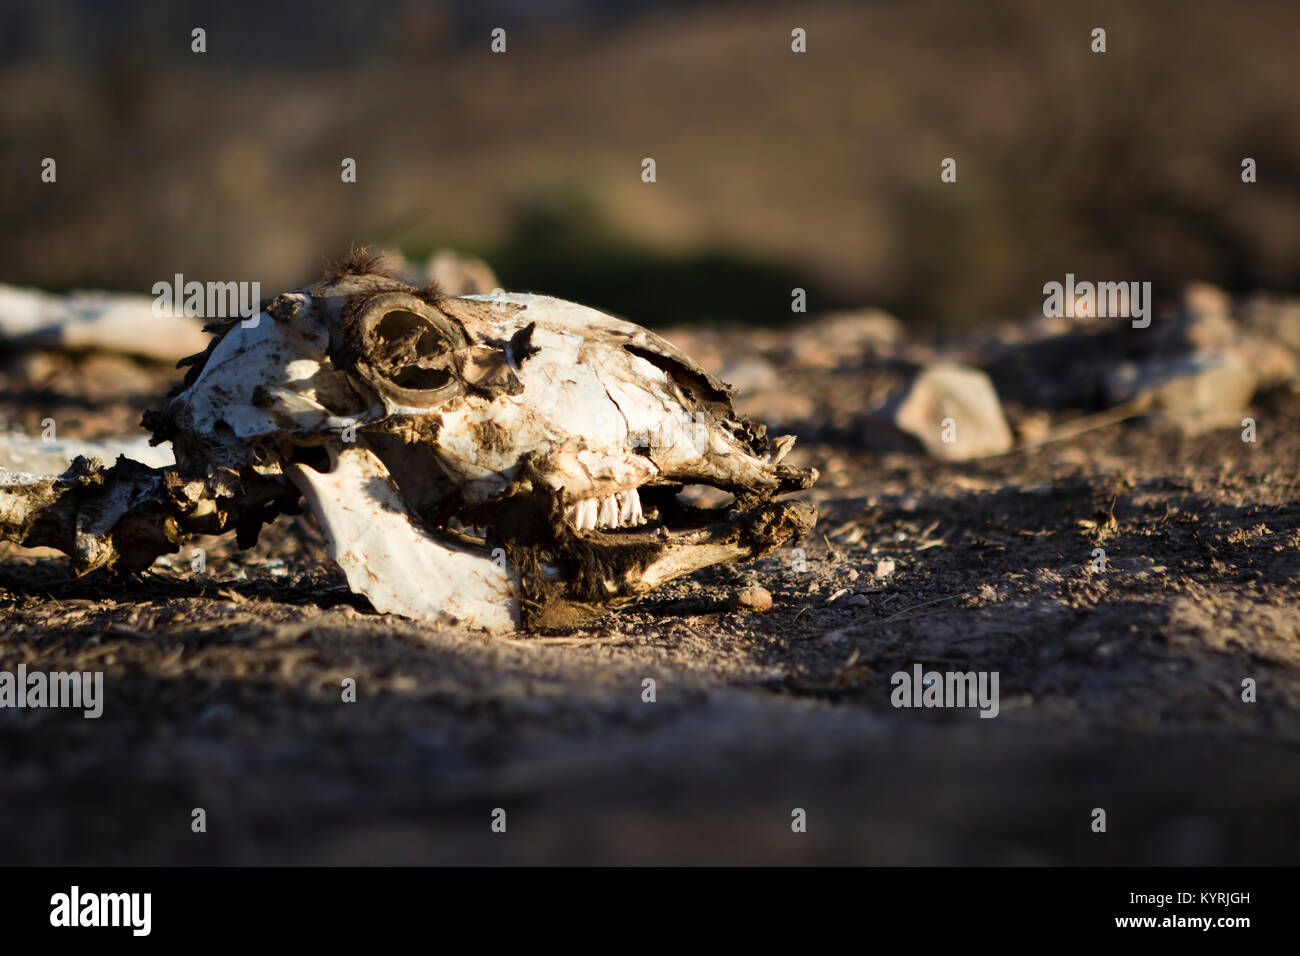 Animal skull in natural light, grim, depressing, powerful image of the effects of climate change and environmental - Stock Image